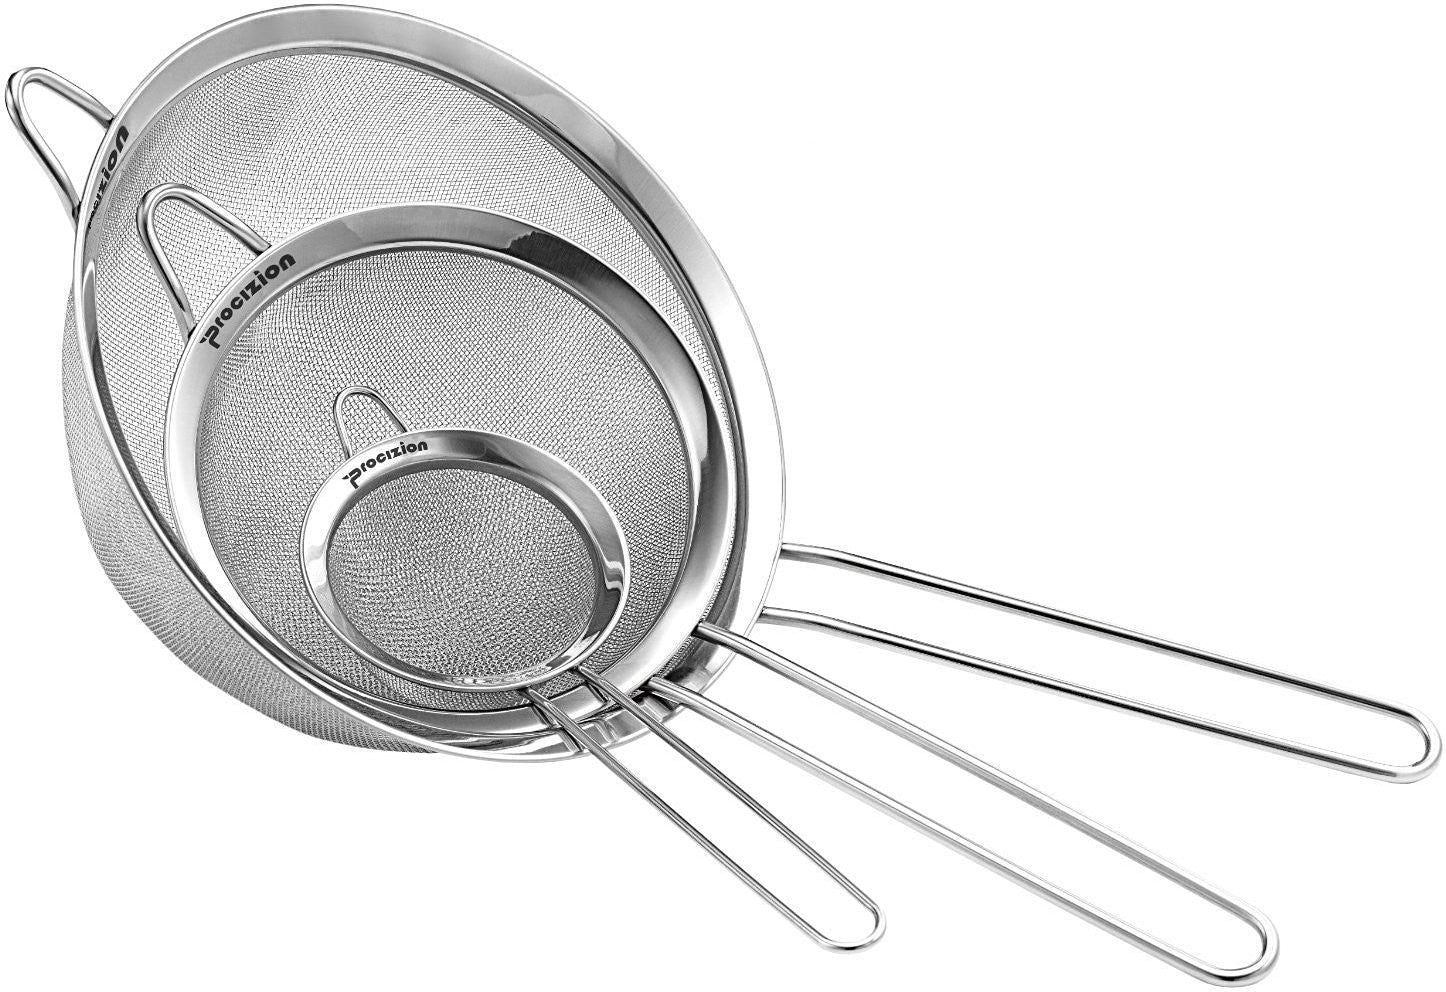 Stainless Steel Handle Kitchen Various Seive Fine Mesh Tea Strainer Sifter